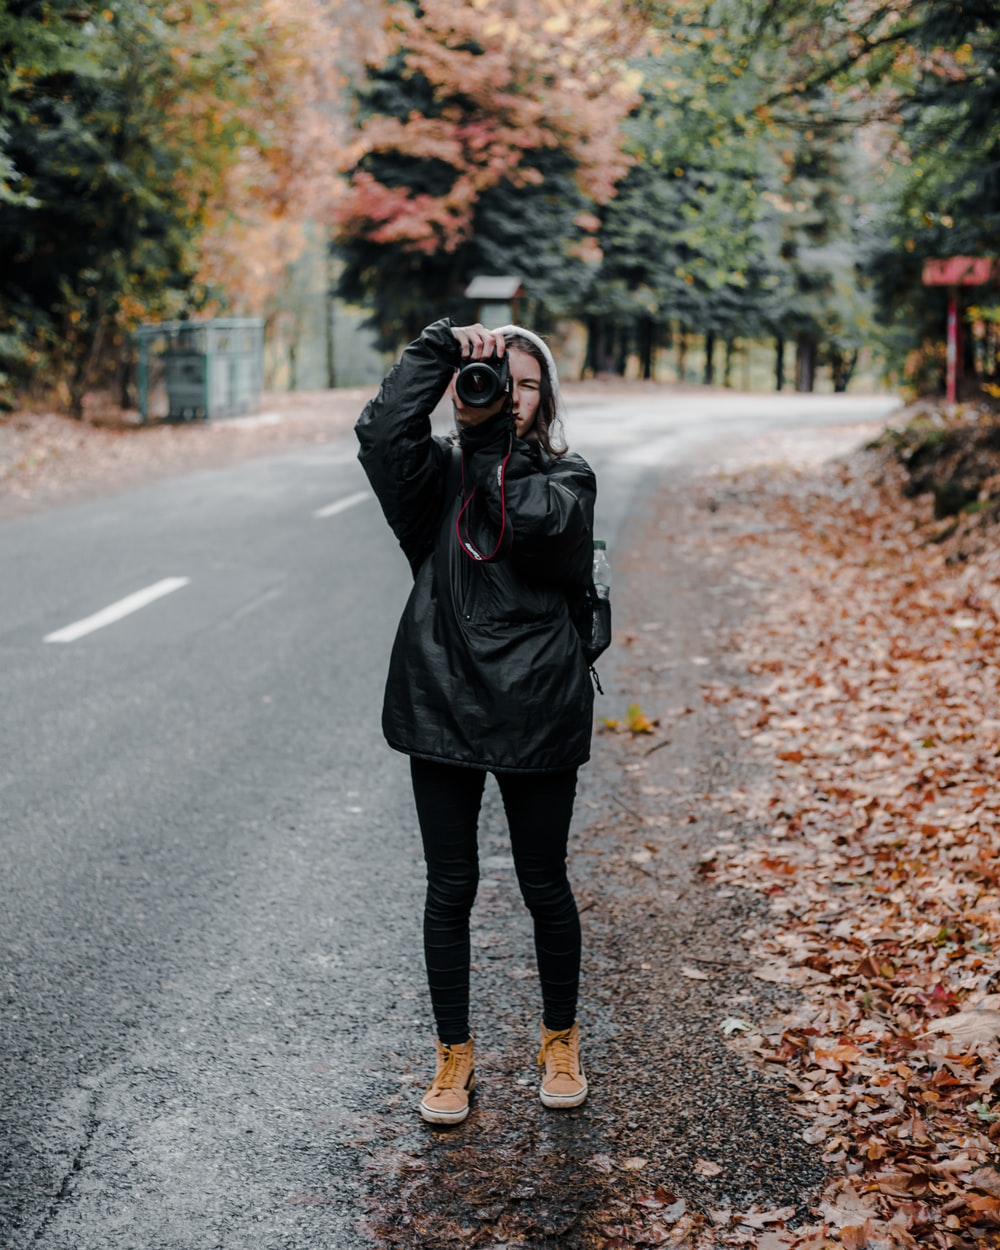 man holding camera standing on road